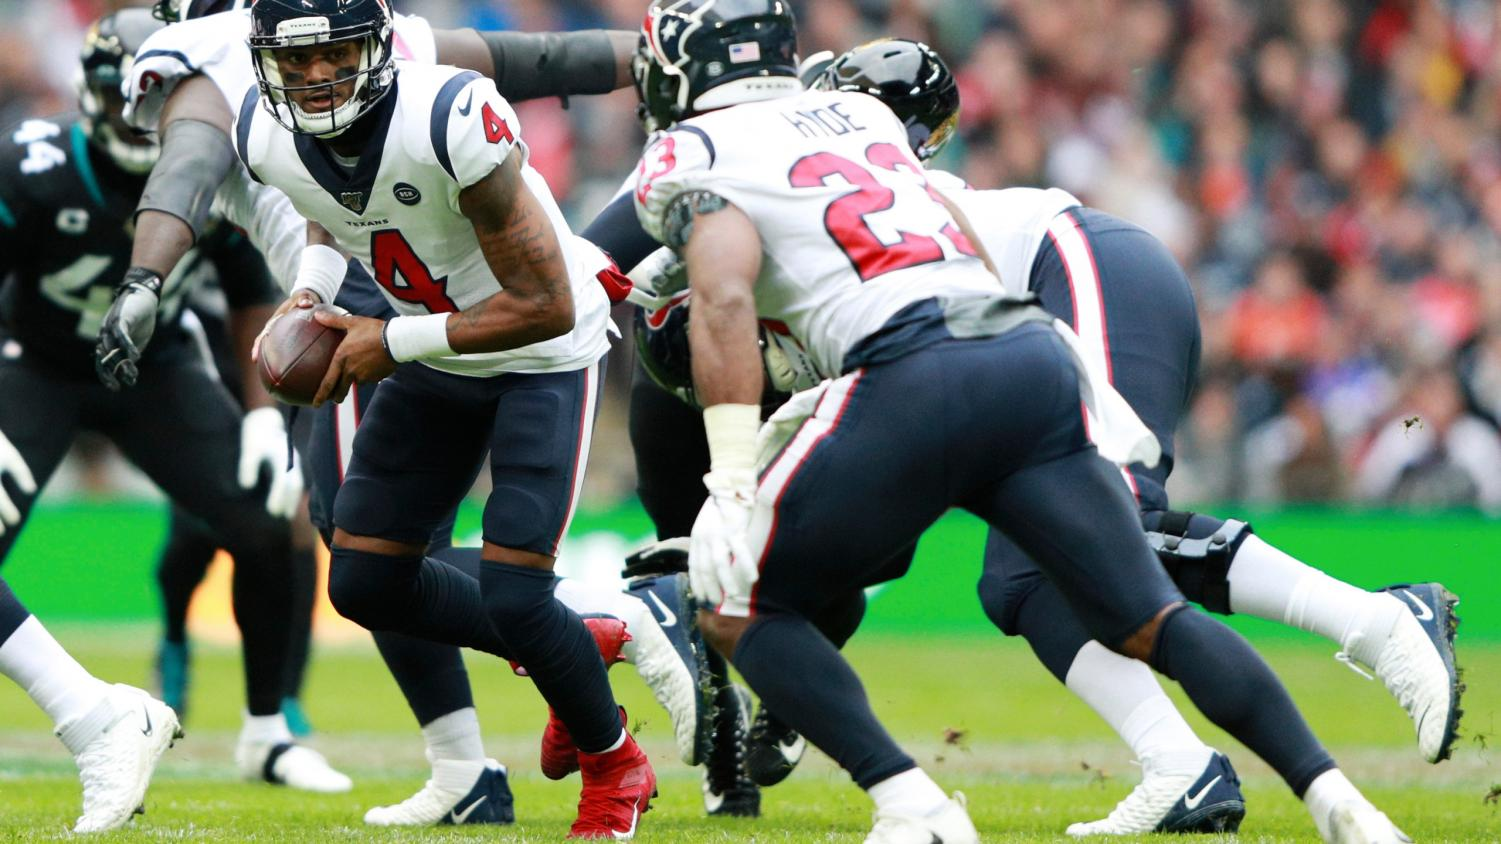 DW4 hands the ball of to Carlos Hyde during yesterday's game at Wembley Stadium.